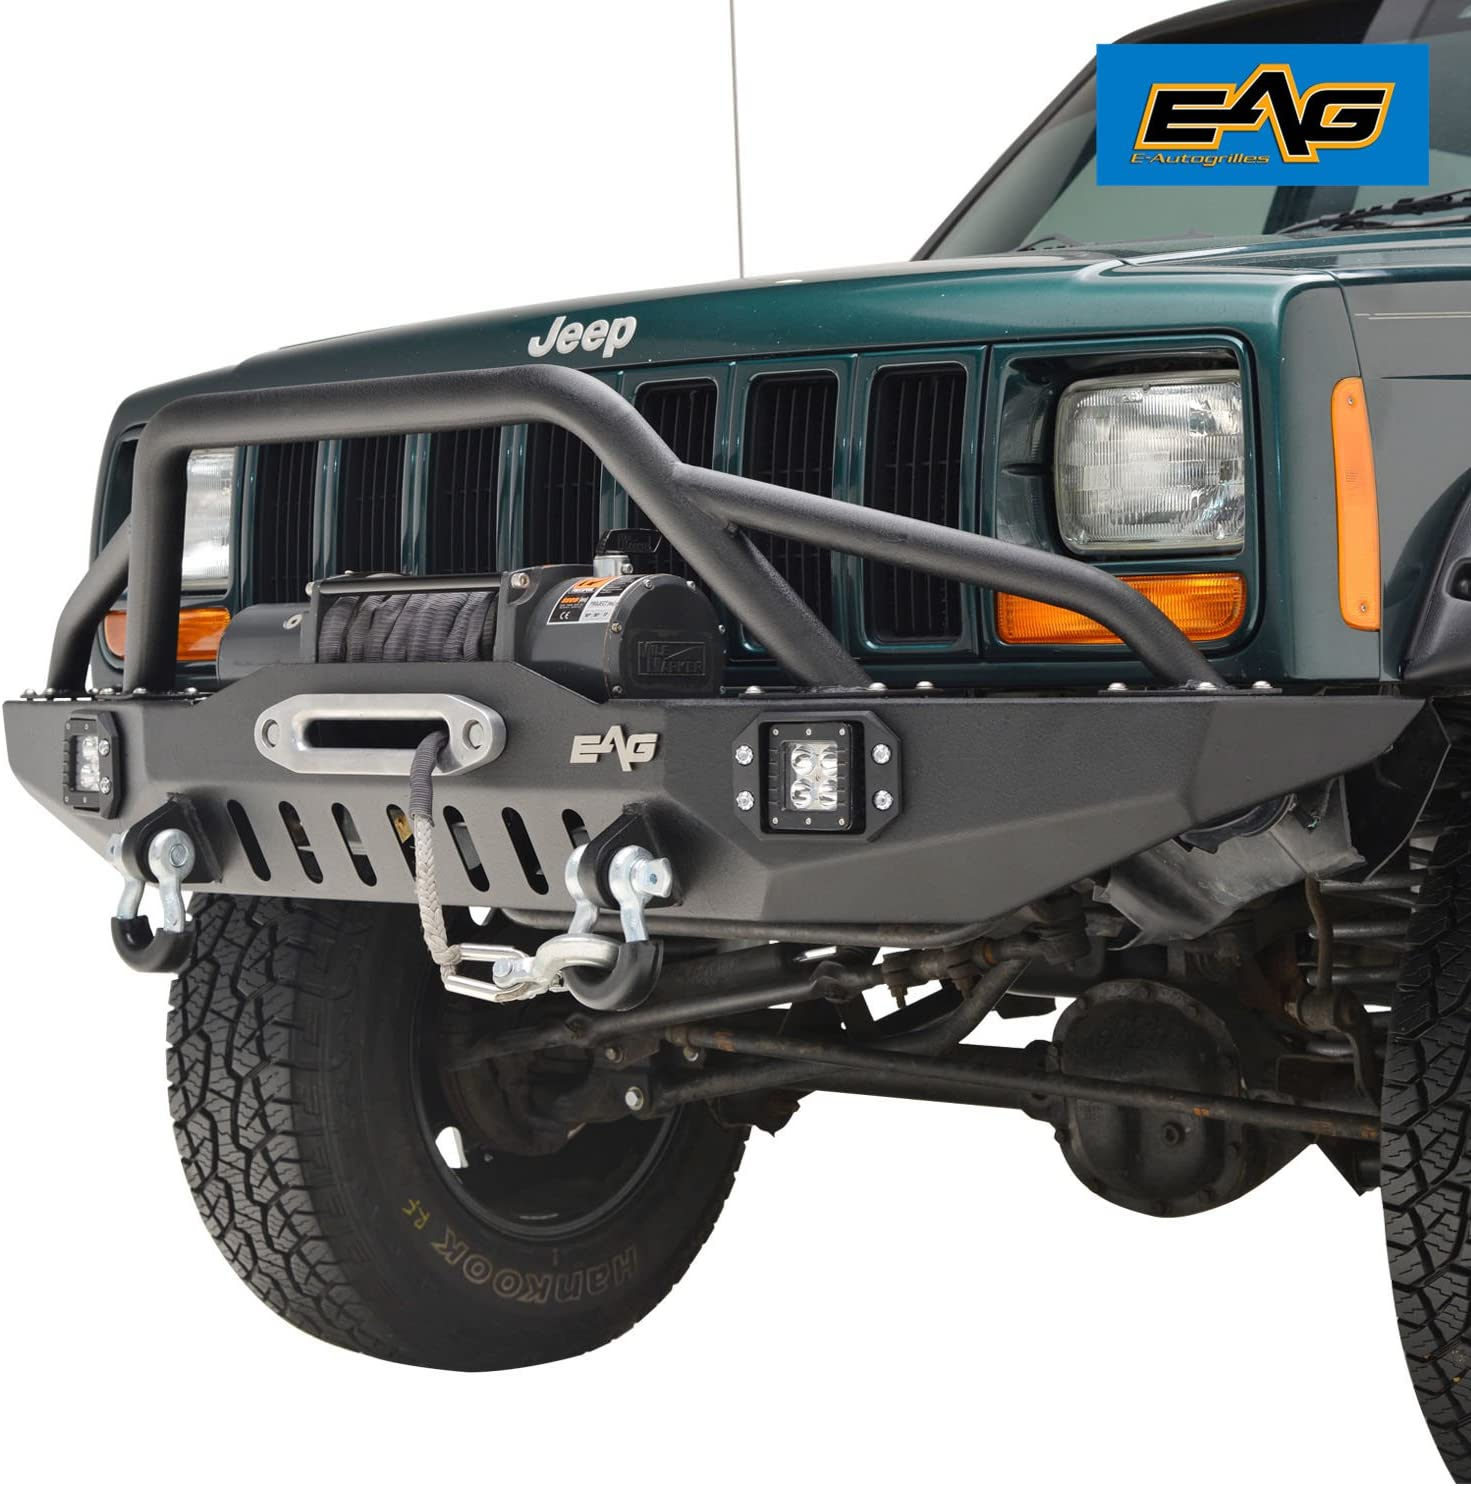 eag front bumper with led lights and winch plate jeep wj fog lights jeep cherokee xj aftermarket fog lights #4